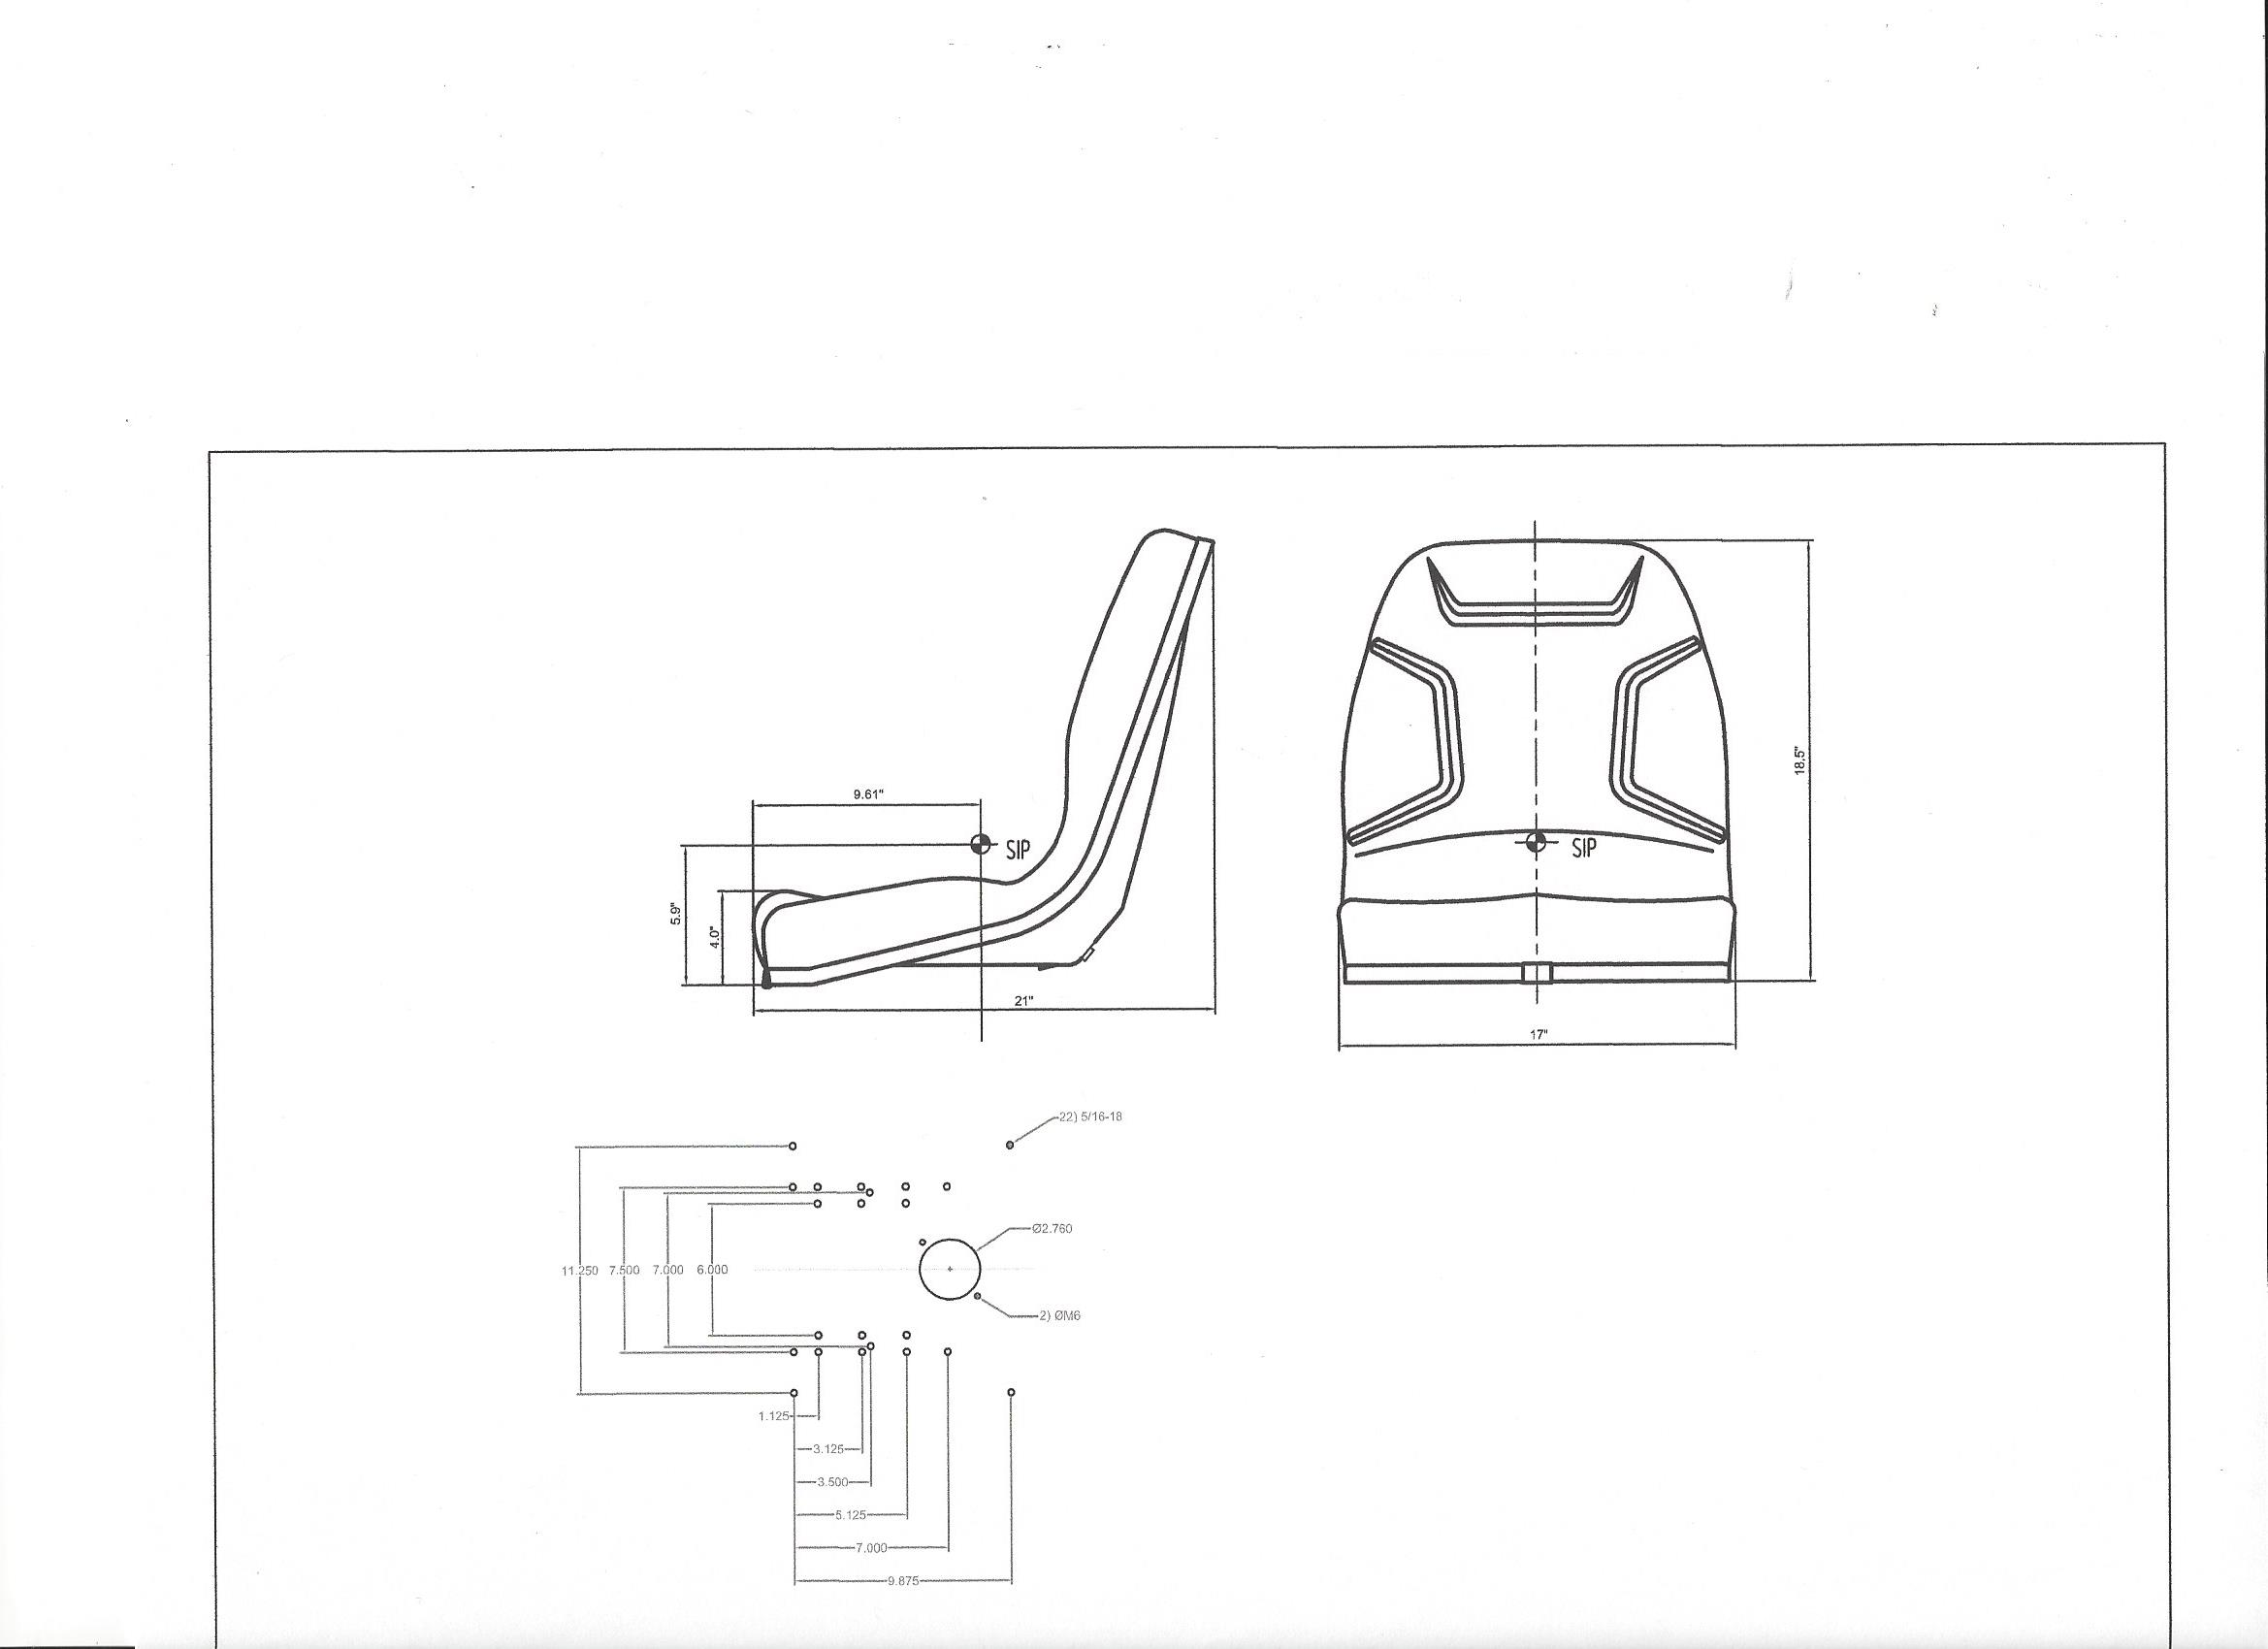 bolens from iseki mower parts manual